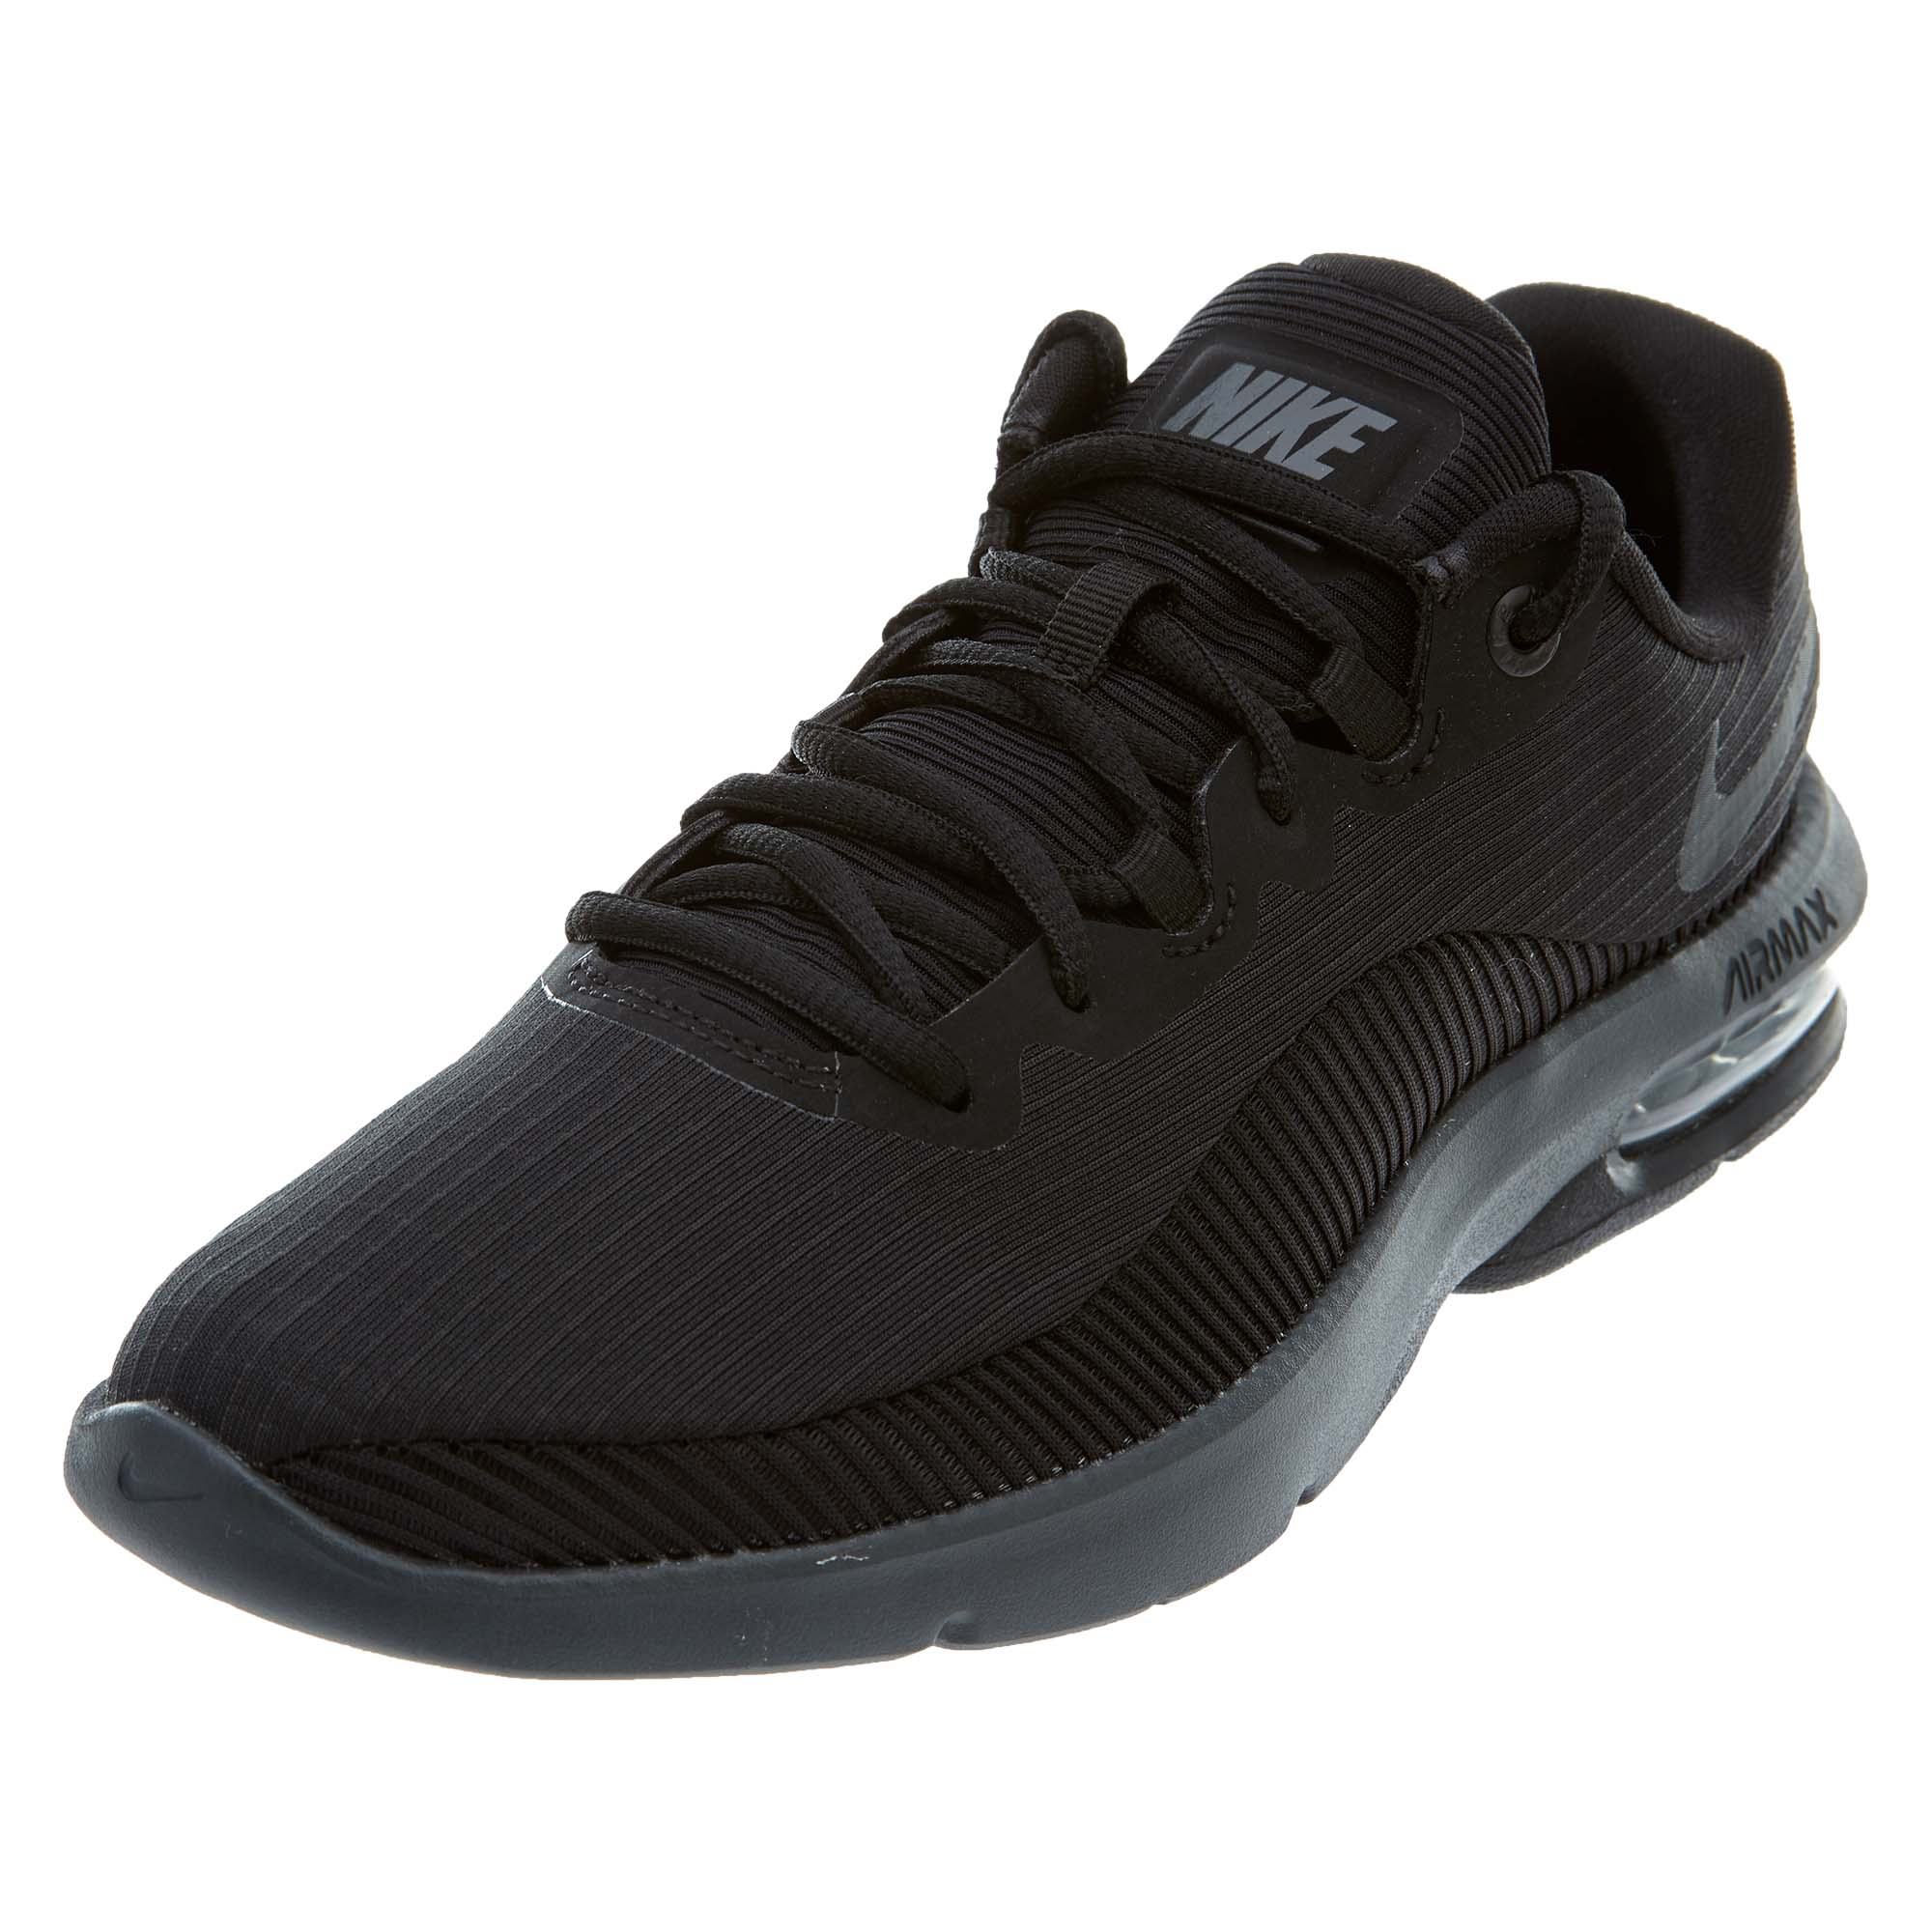 quality design a721b 1e69c Details about Nike Mens Air Max Advantage 2 Running Shoes AA7396-002